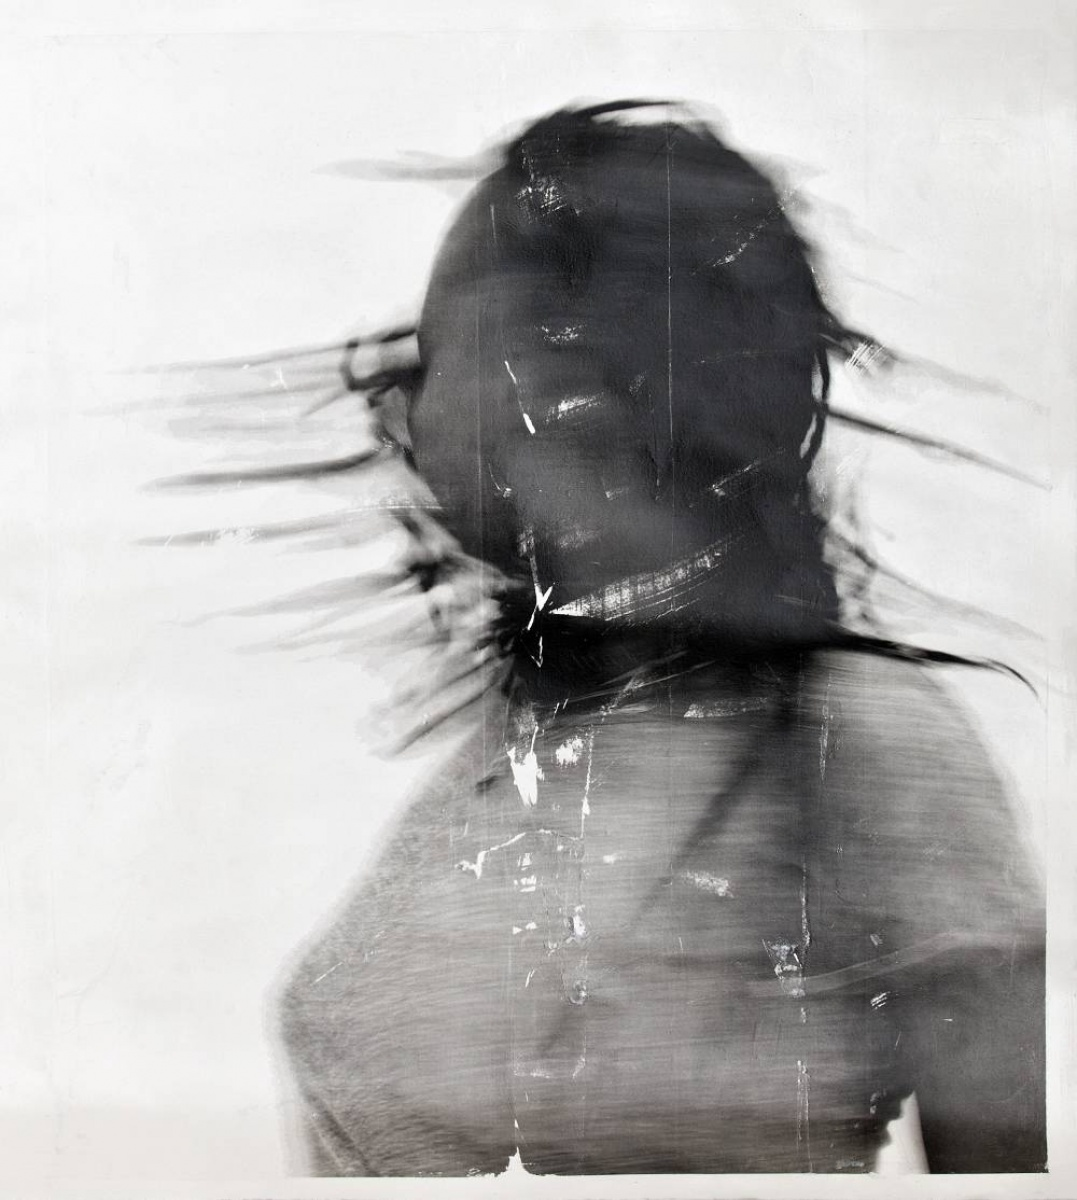 Black and white photographic work by Sandra Brewster